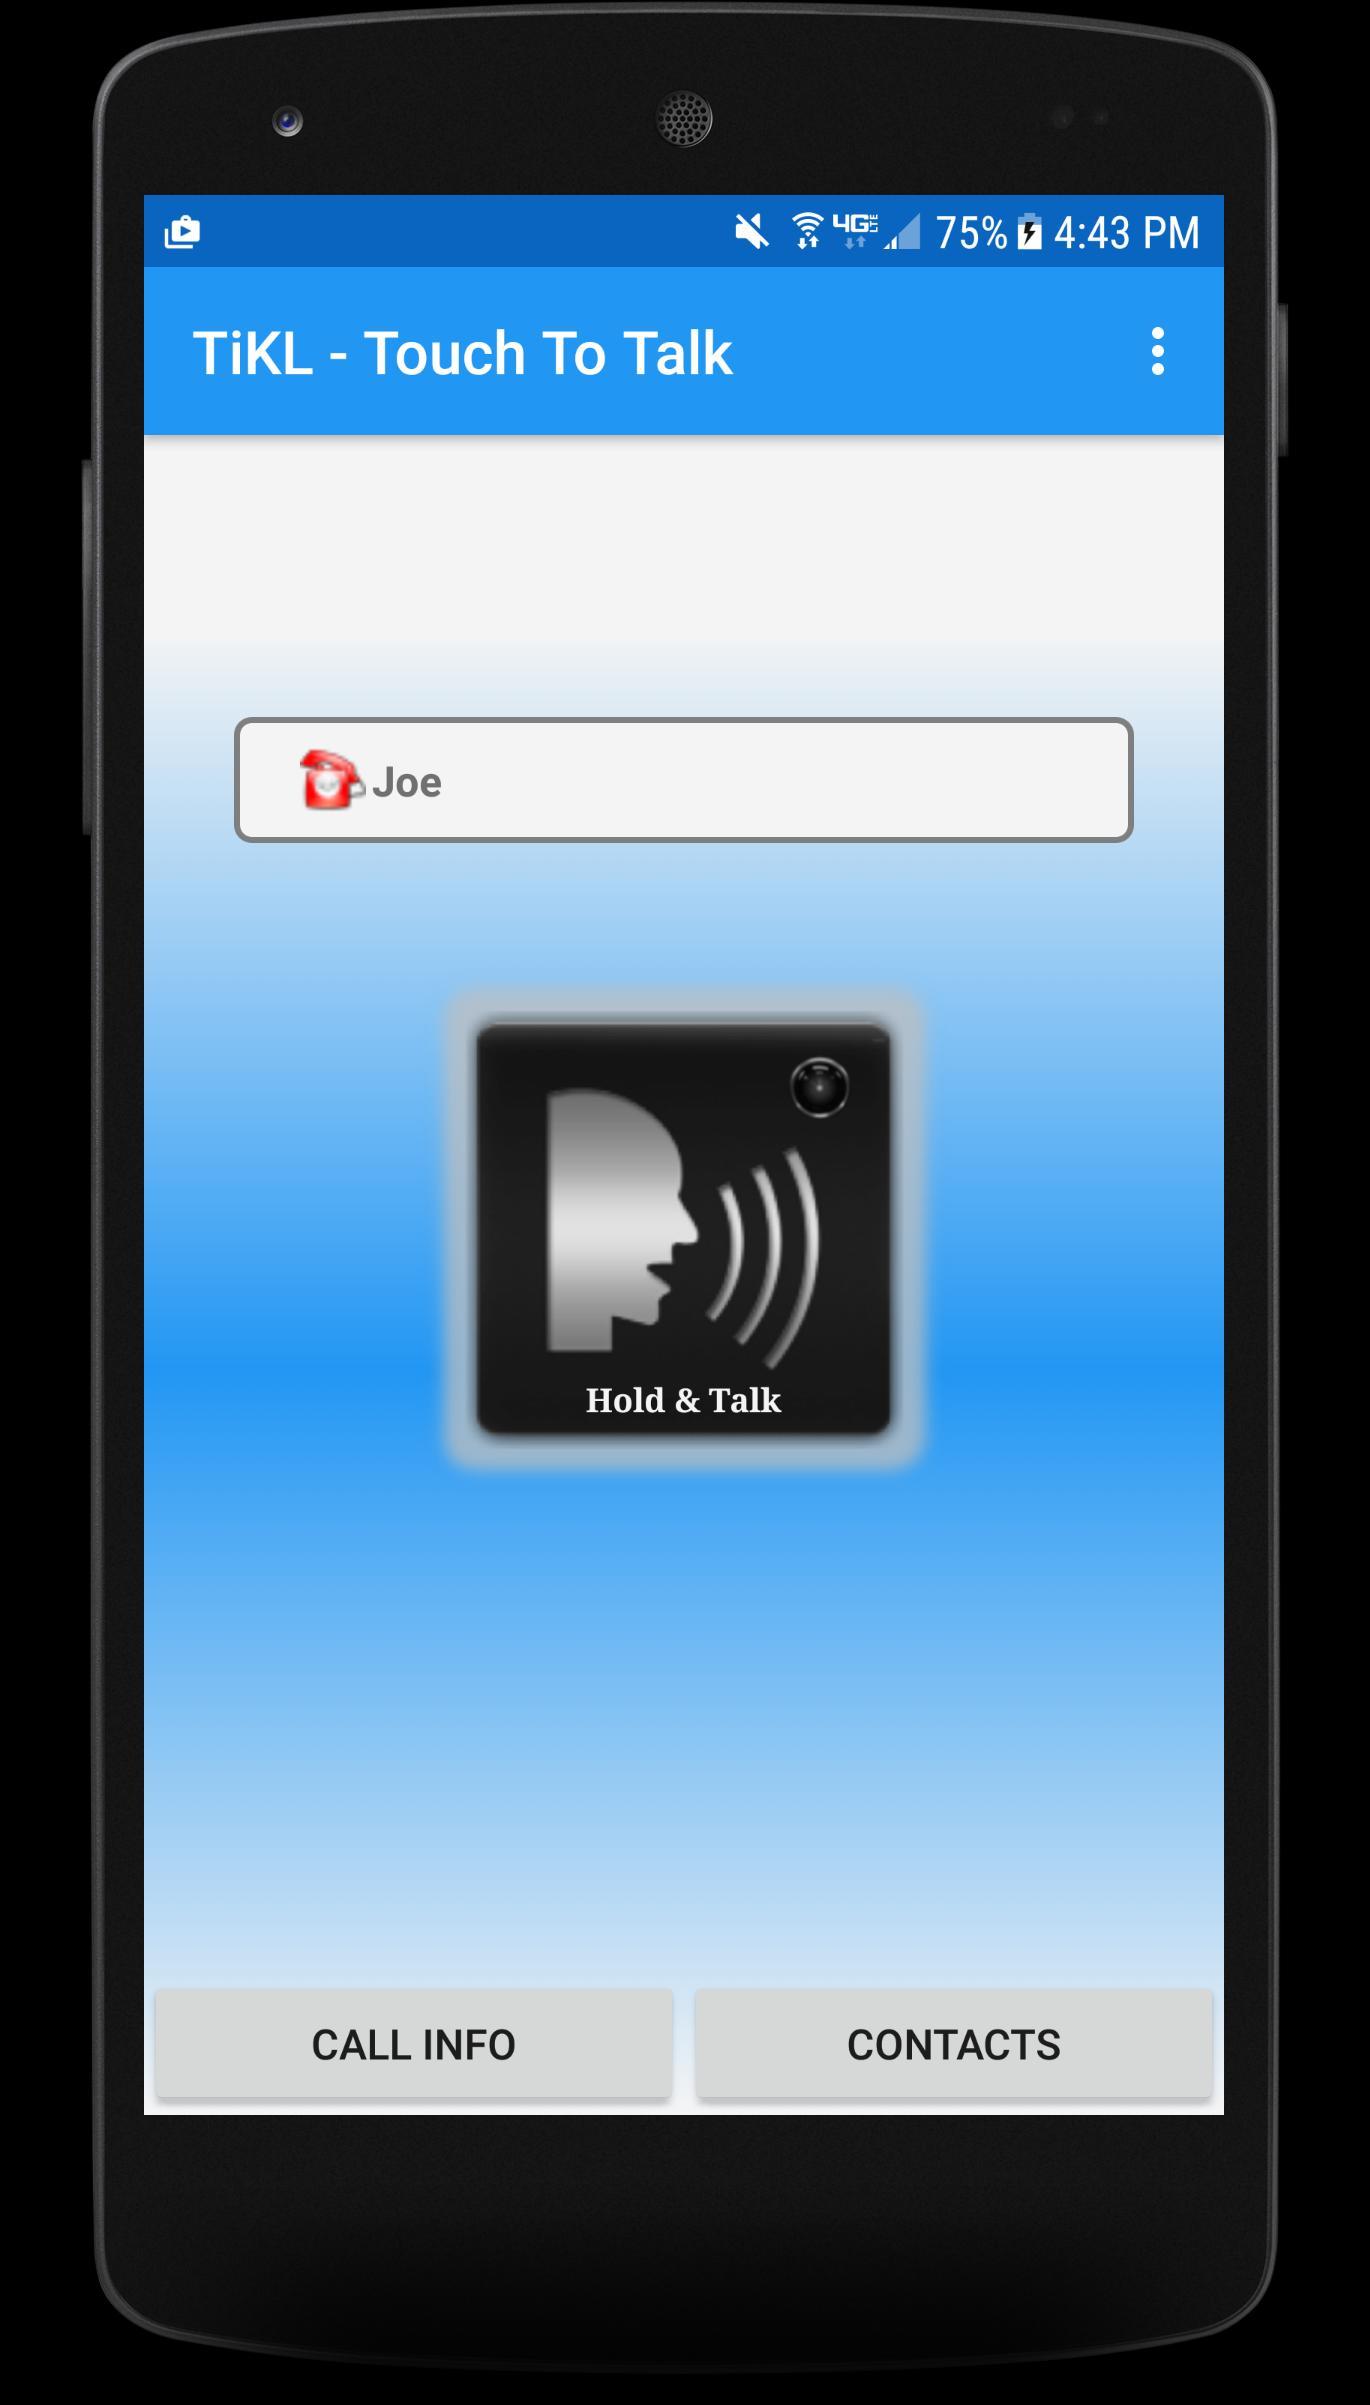 TiKL Touch Talk Walkie Talkie for Android - APK Download